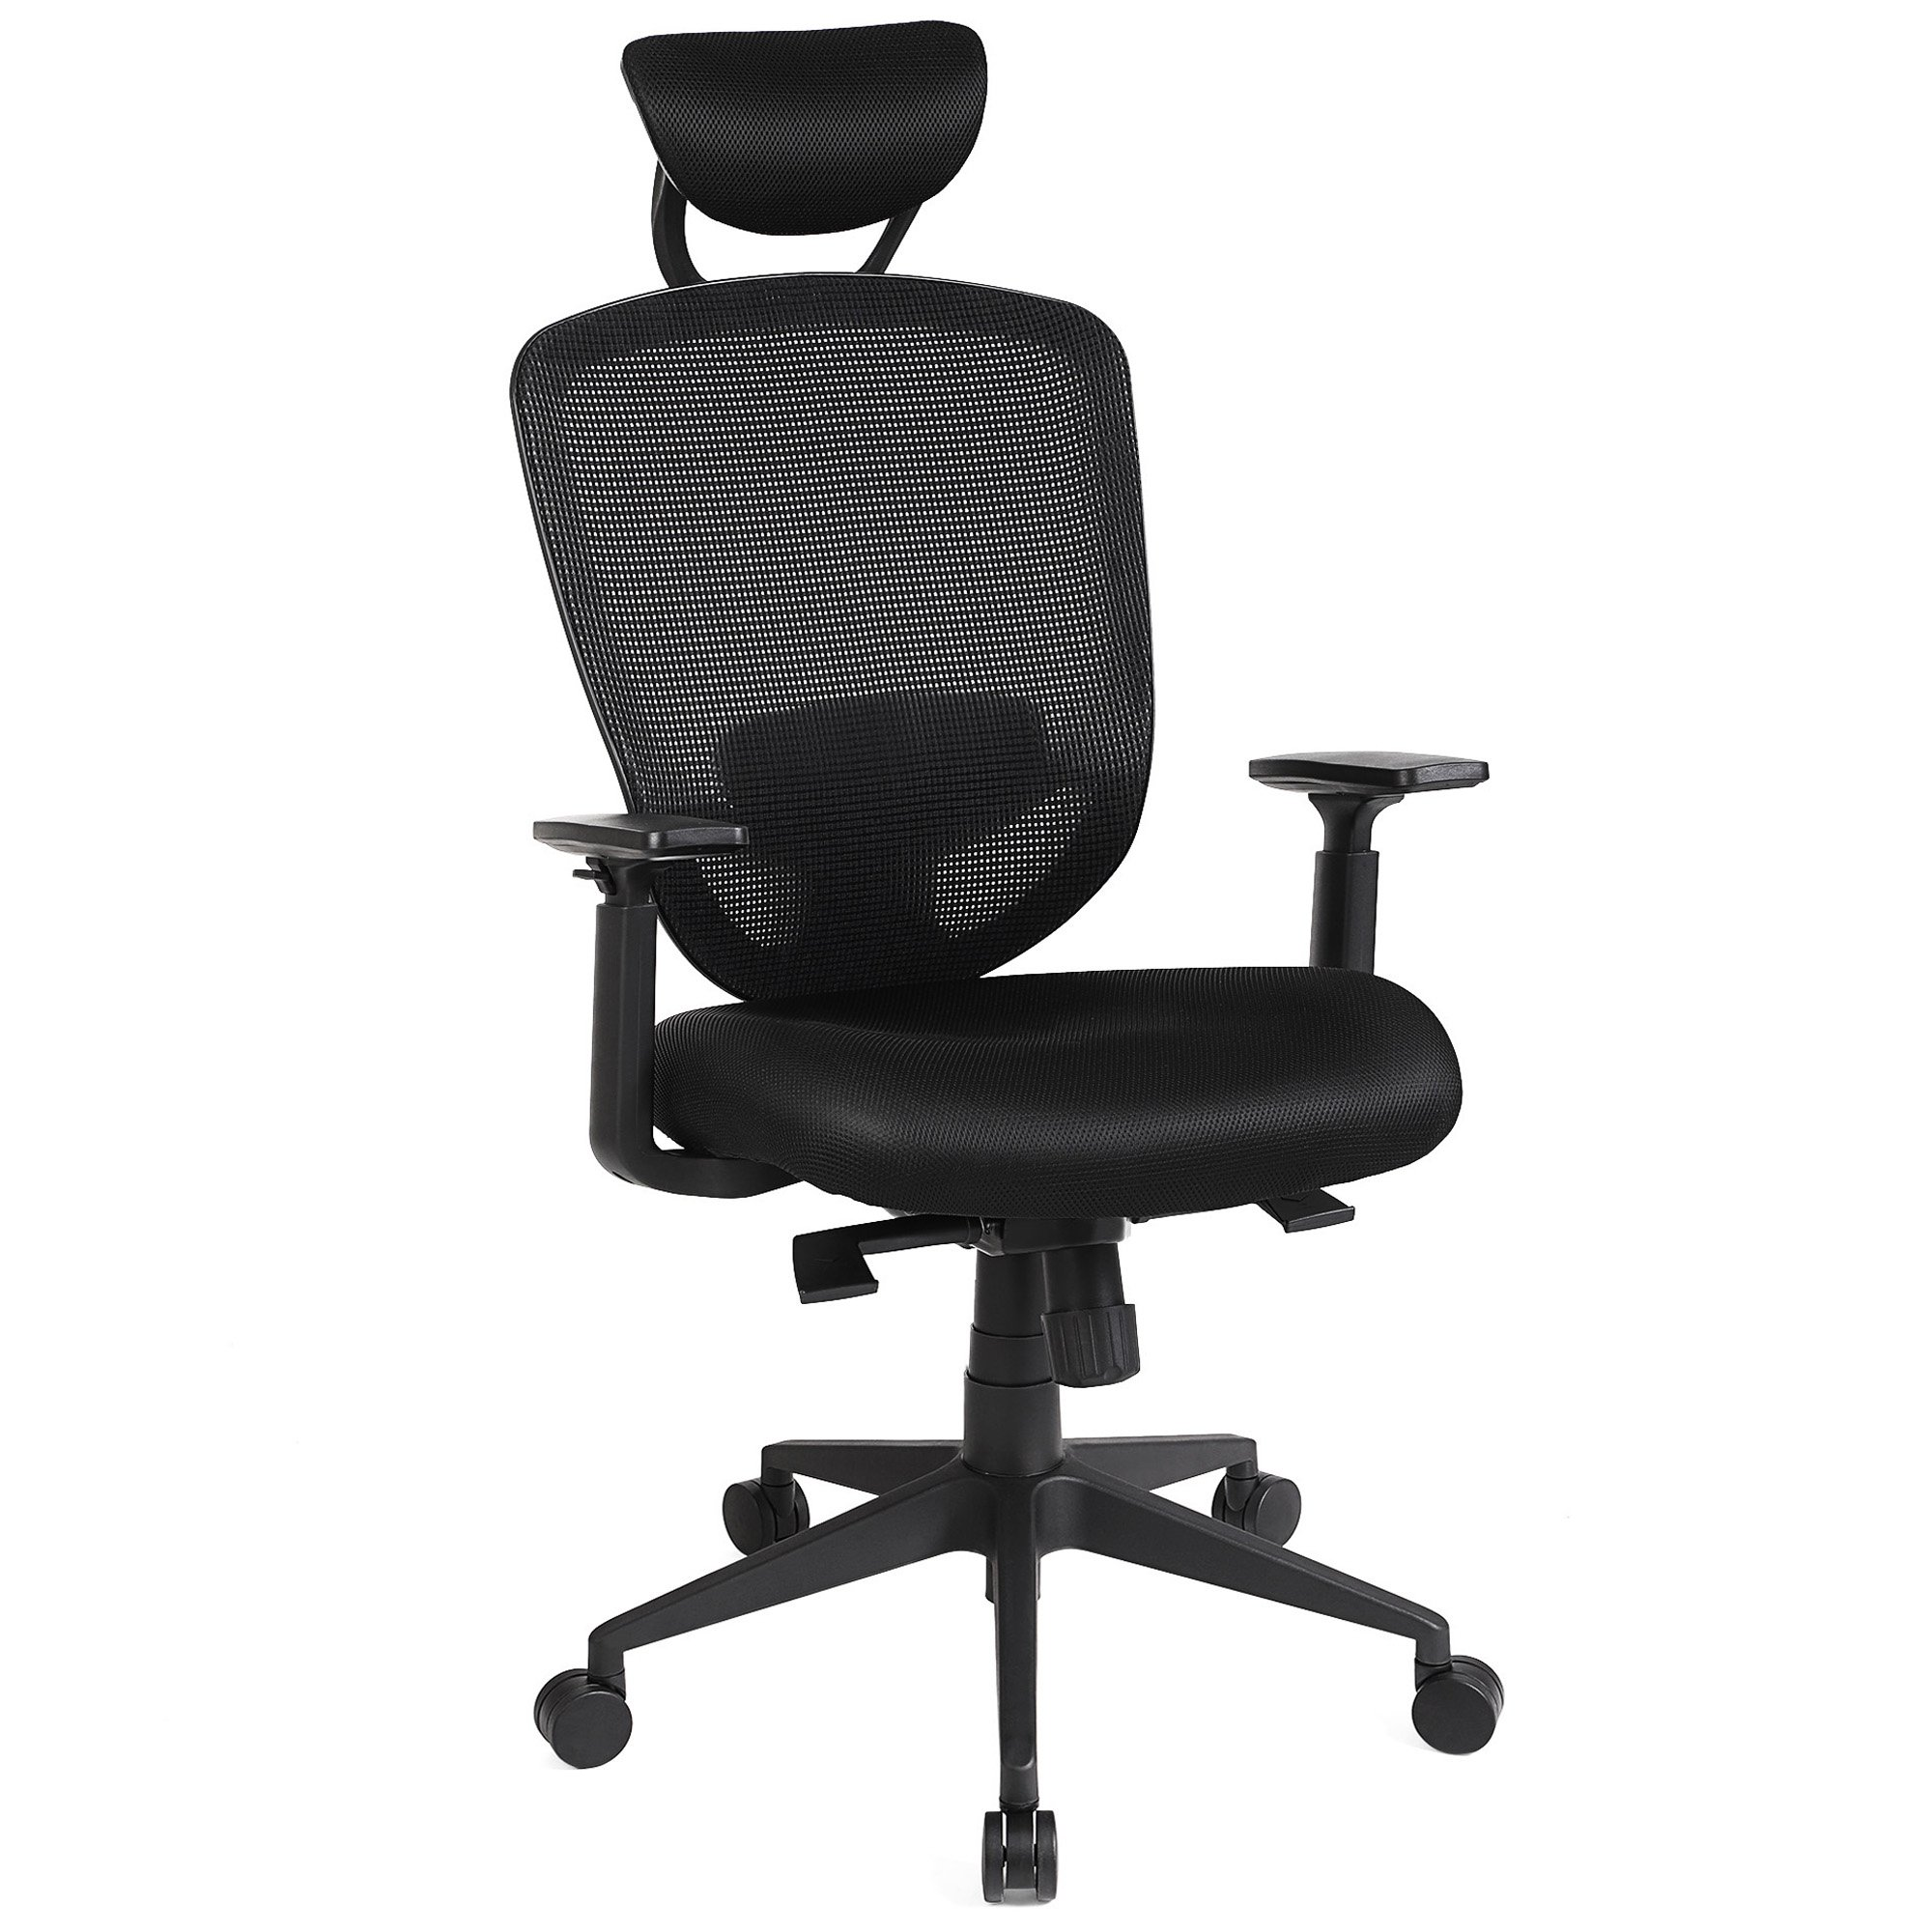 SONGMICS High Back Office Chair, Swivel Mesh Chair, with Adjustable Lumbar Support, Headrest and Armrests, Back Reclining and Tilt Lock Function, Black UOBN88BK-